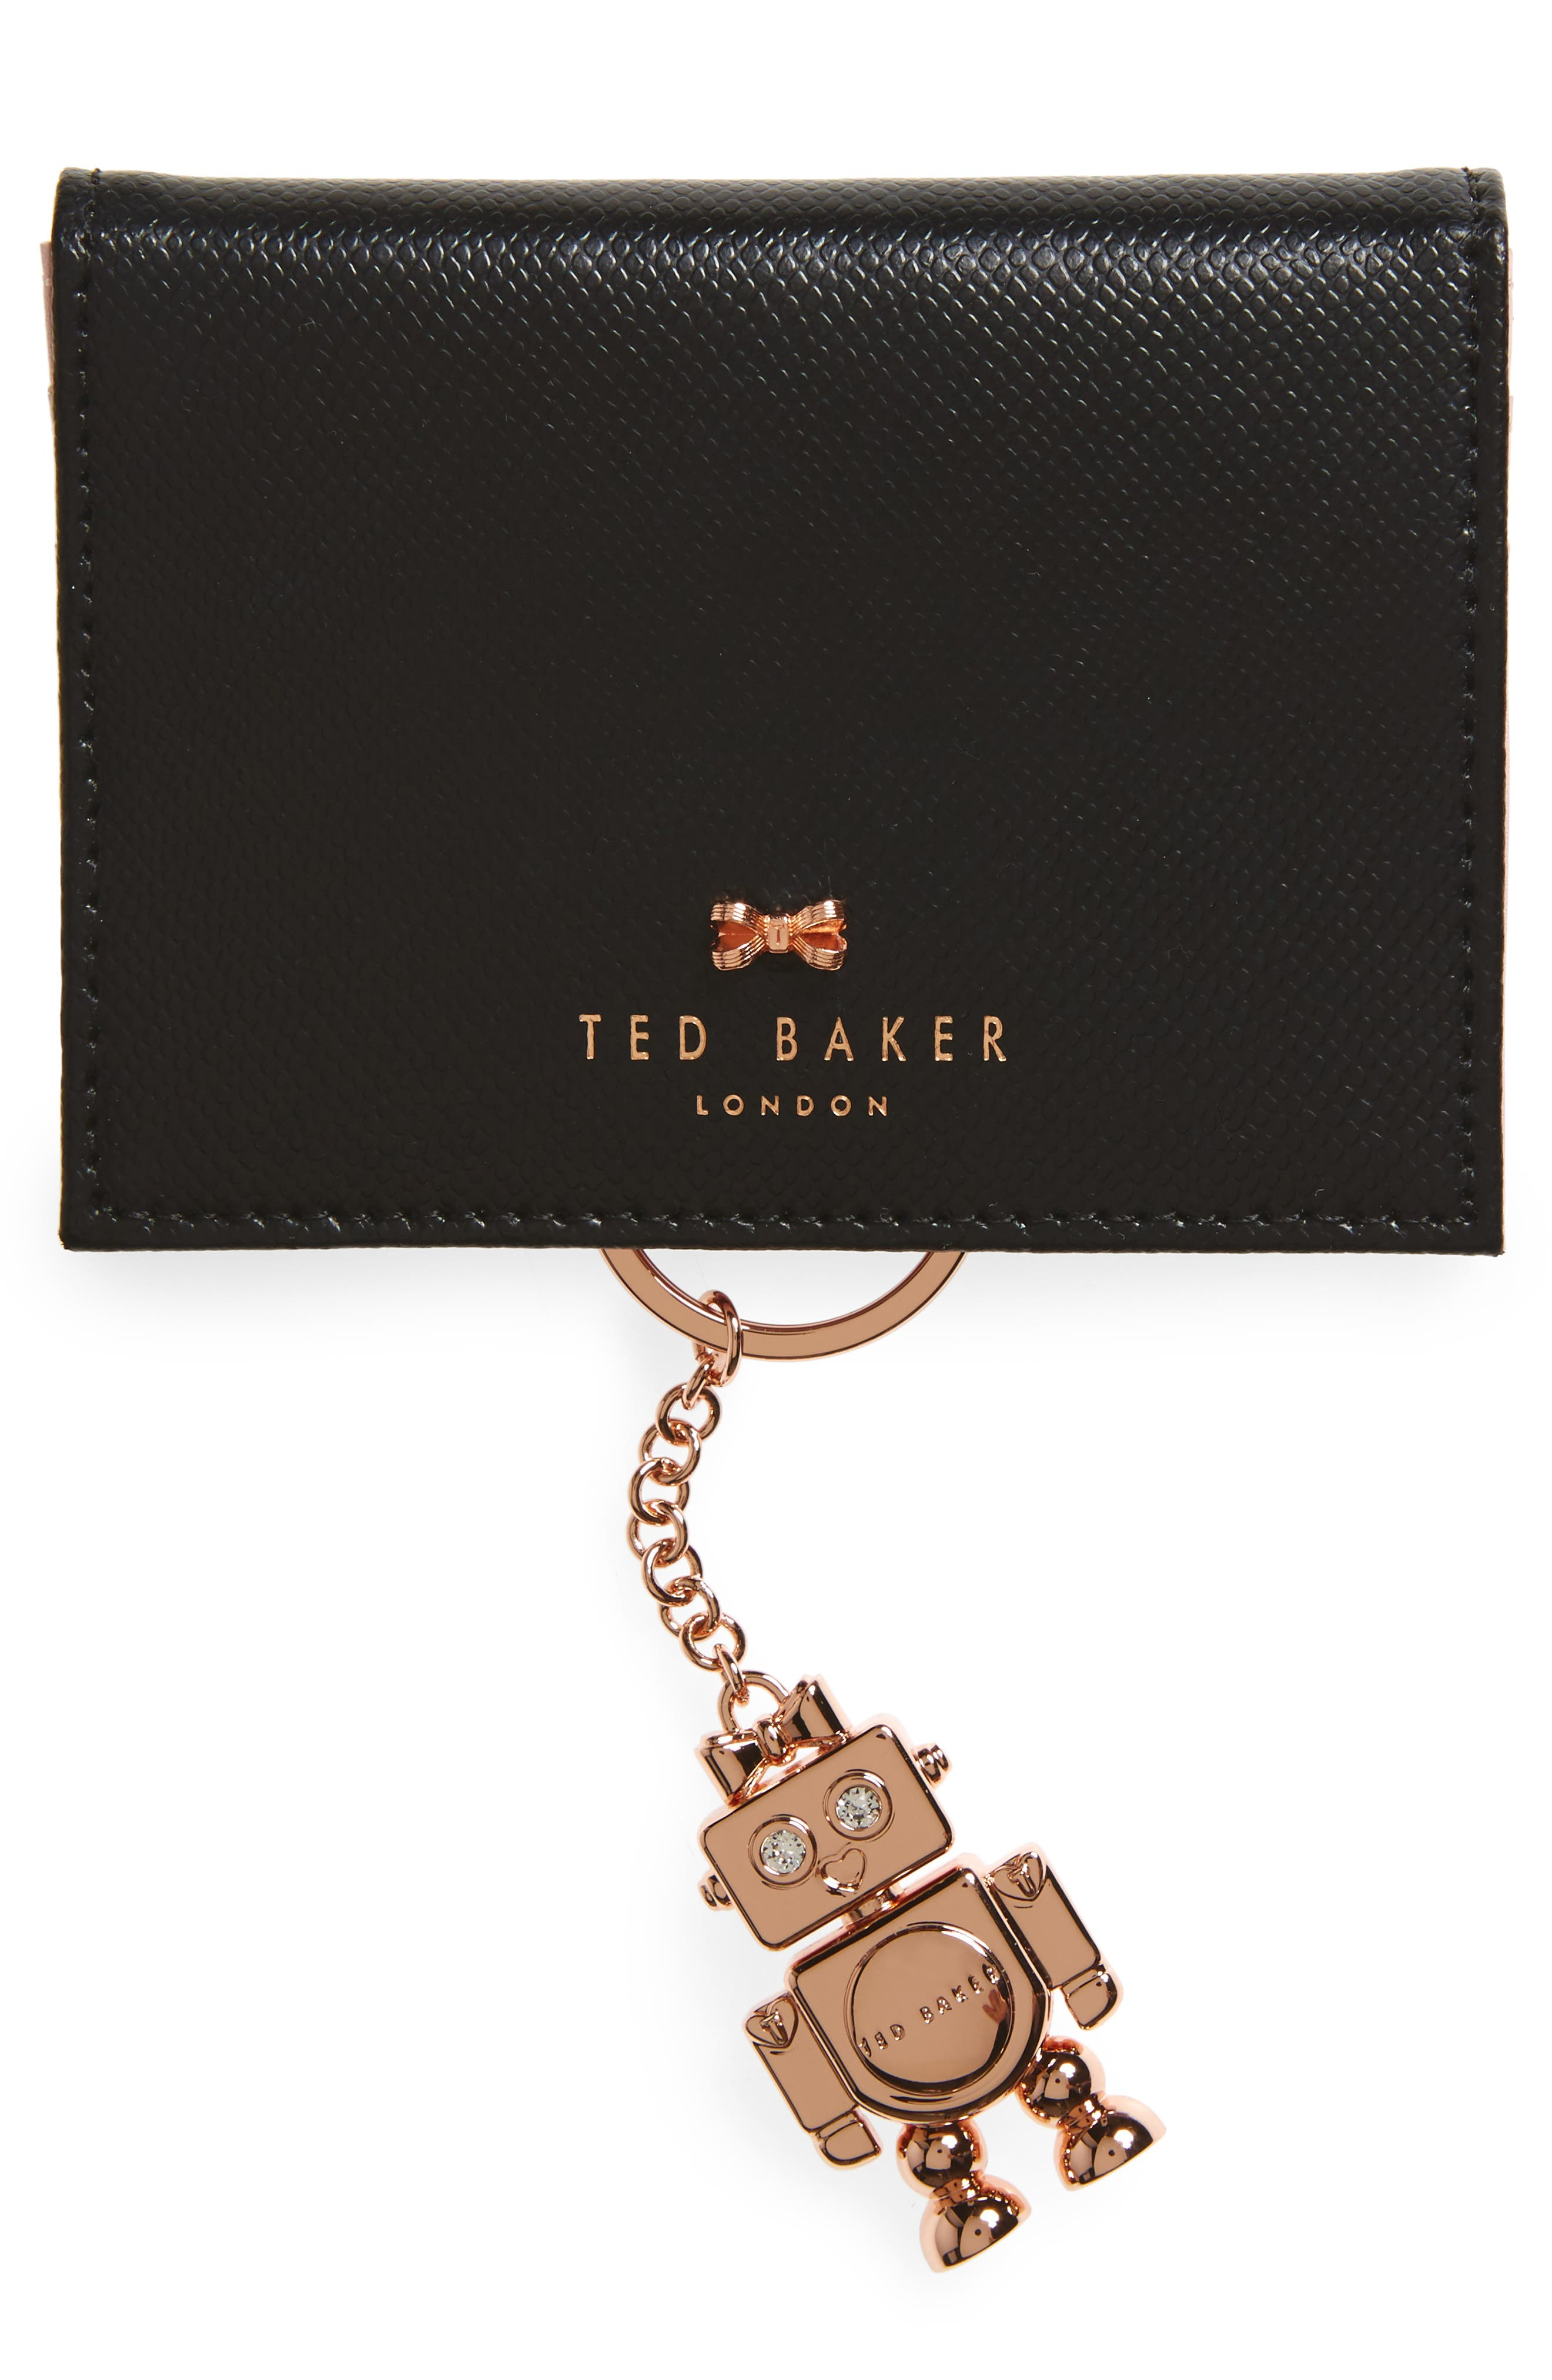 Alternate Image 1 Selected - Ted Baker London Leather Card Case with Robot Key Chain